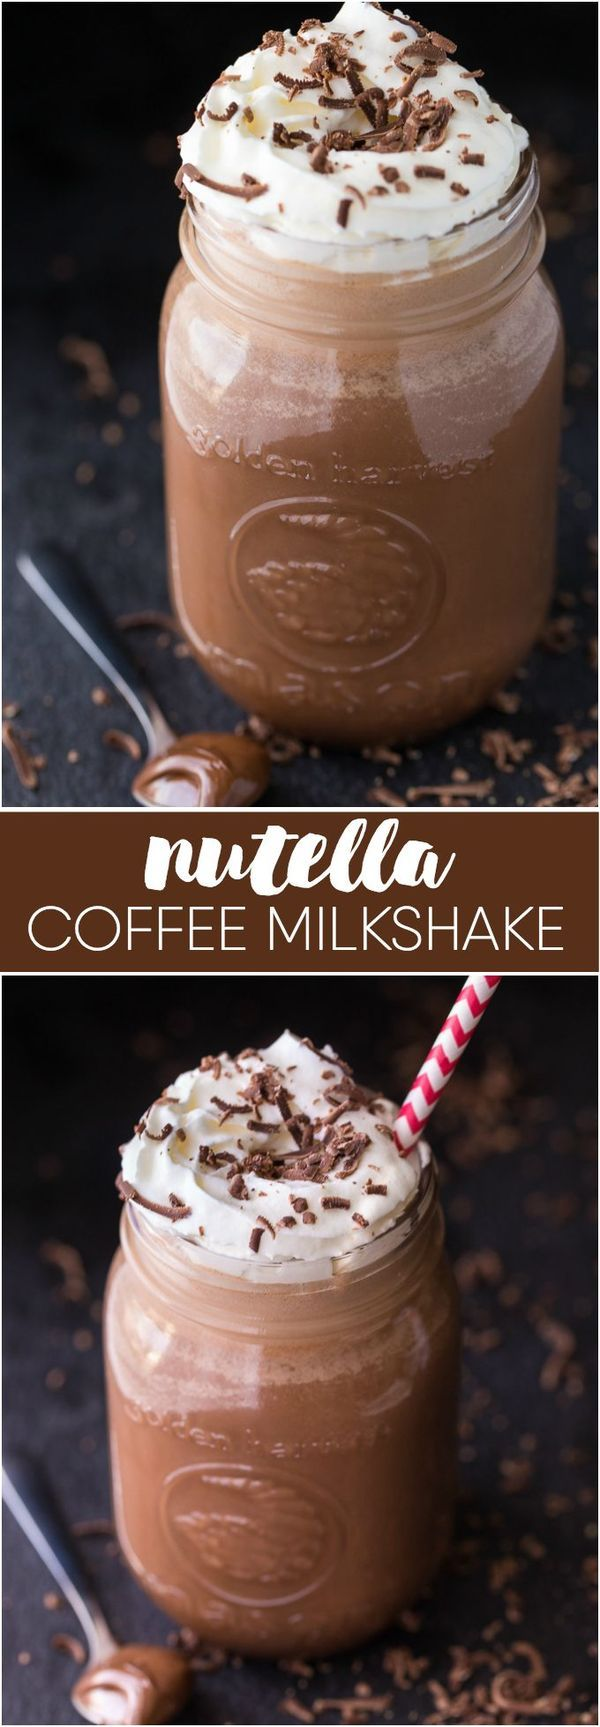 Nutella Coffee Milkshake - Perfectly sweet, chocolatey with a hint of nuttiness! A cold and refreshing way to get your caffeine fix.